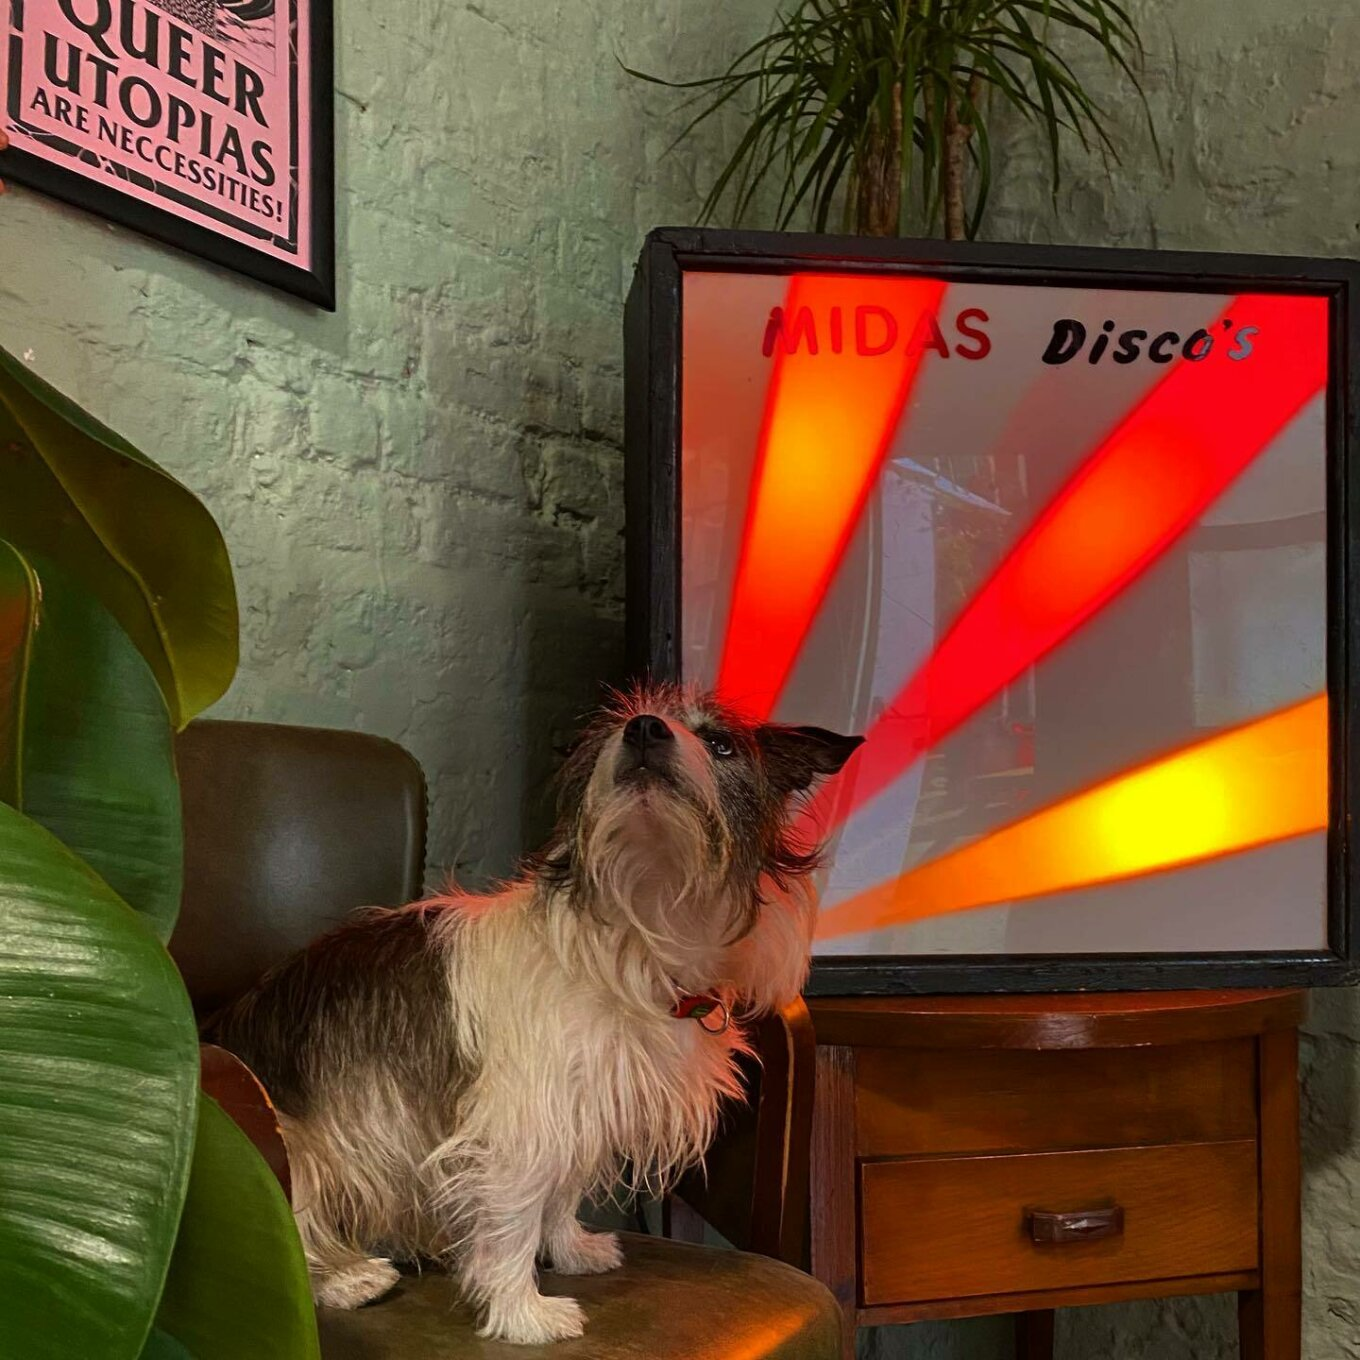 """A Jack Russell sits on a brown leather chair in front of a pale green wall. The dog looks to a pink framed print on the wall, which reads """"Queer utopias are necessities"""". To the right is a woodentable with a retro lightbox that reads 'MIDAS Disco's'."""